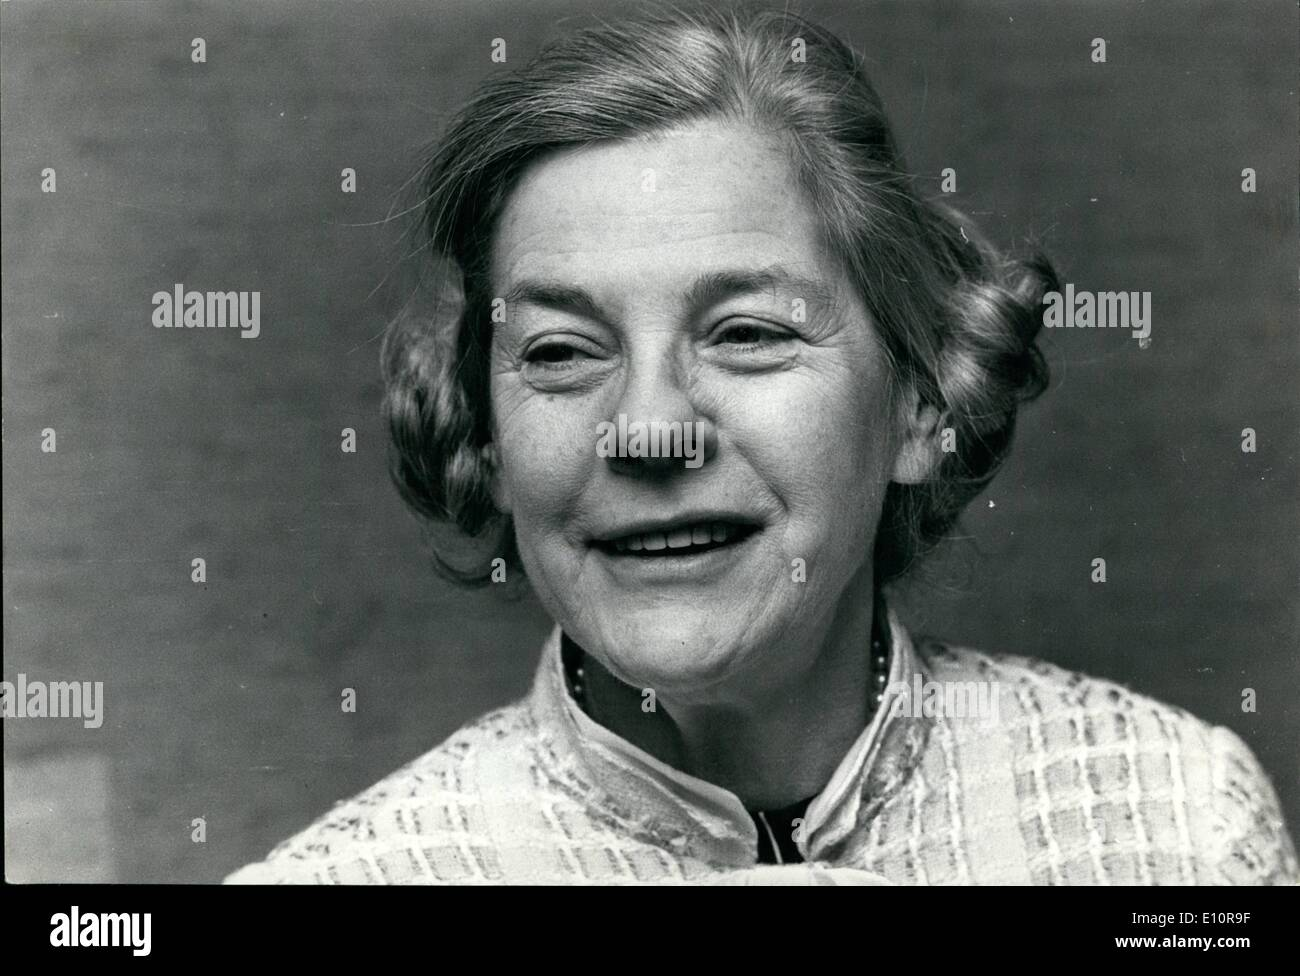 Dec. 12, 1973 - Mary Mccarthy In Stockholm: The American novelist Mary Mccarthy is in Stockholm to make publicity for her book ''Memories of a catholic girl'' which has recently been translated into Swedish and edited here. It was published in the U.S. 16 years ago. Recently she has been observed for her articles in the observer about the watergate scandal. Her opinion is that nixon should retire and that Eugene Mccarthy is elected new prresident in the States - Stock Image